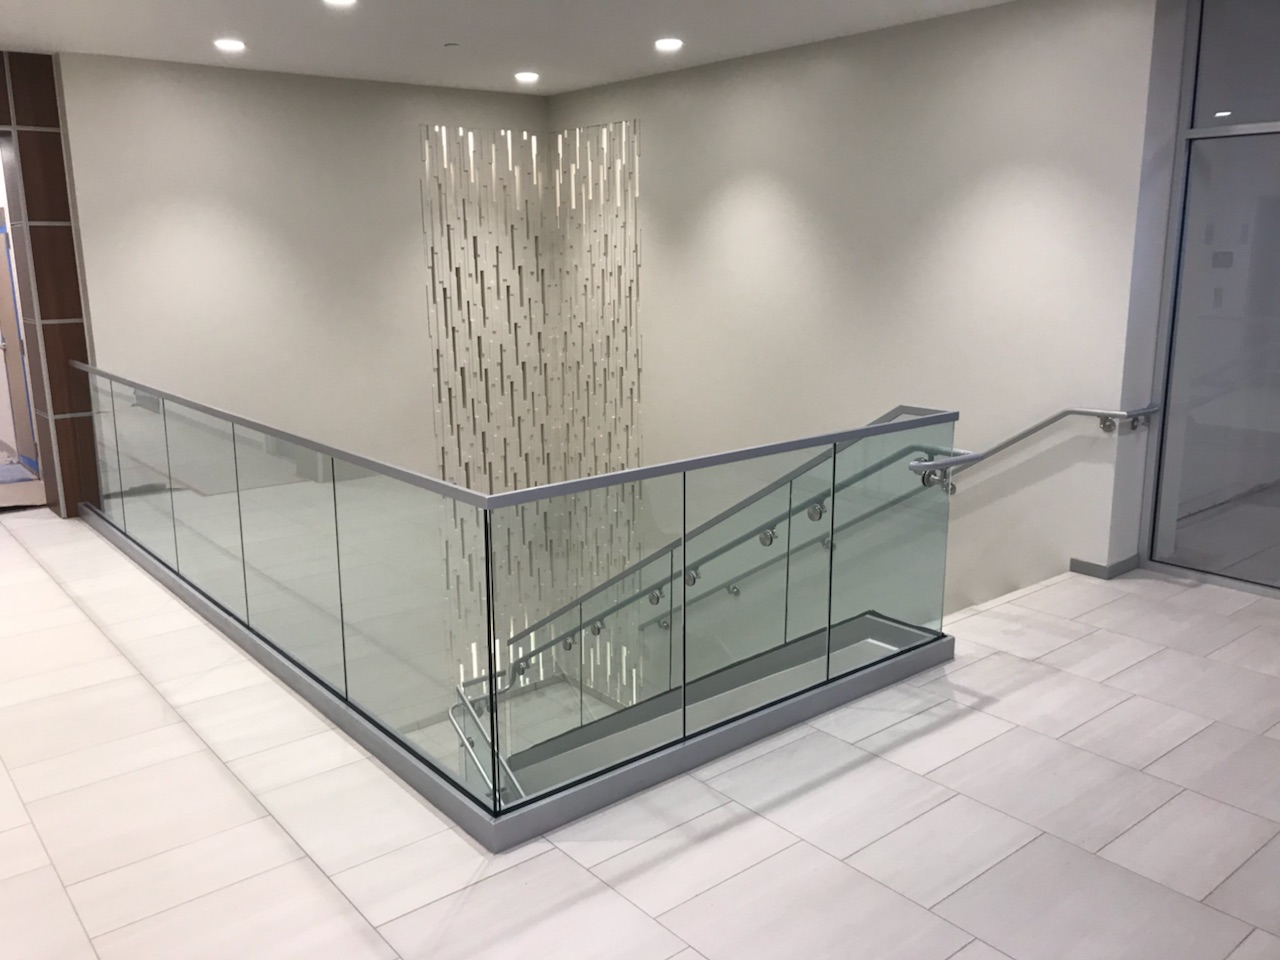 Glass balustrade and cable railing for staircase ,balcony and pool fence , stainless steel railings